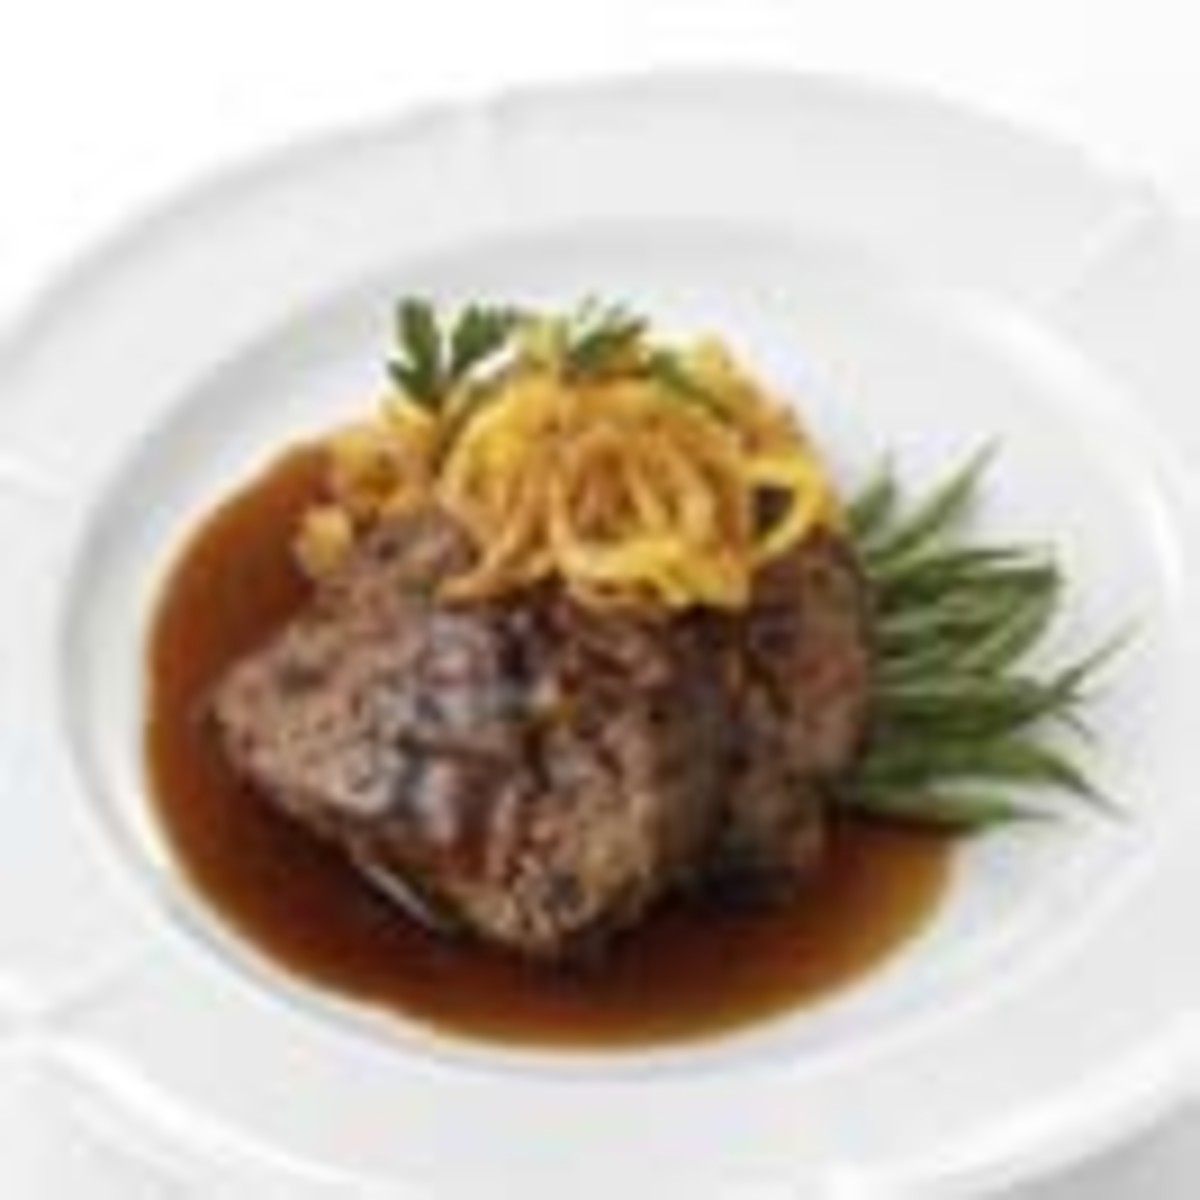 New Orleans-style Meat Loaf with California Raisins and Creole Mustard